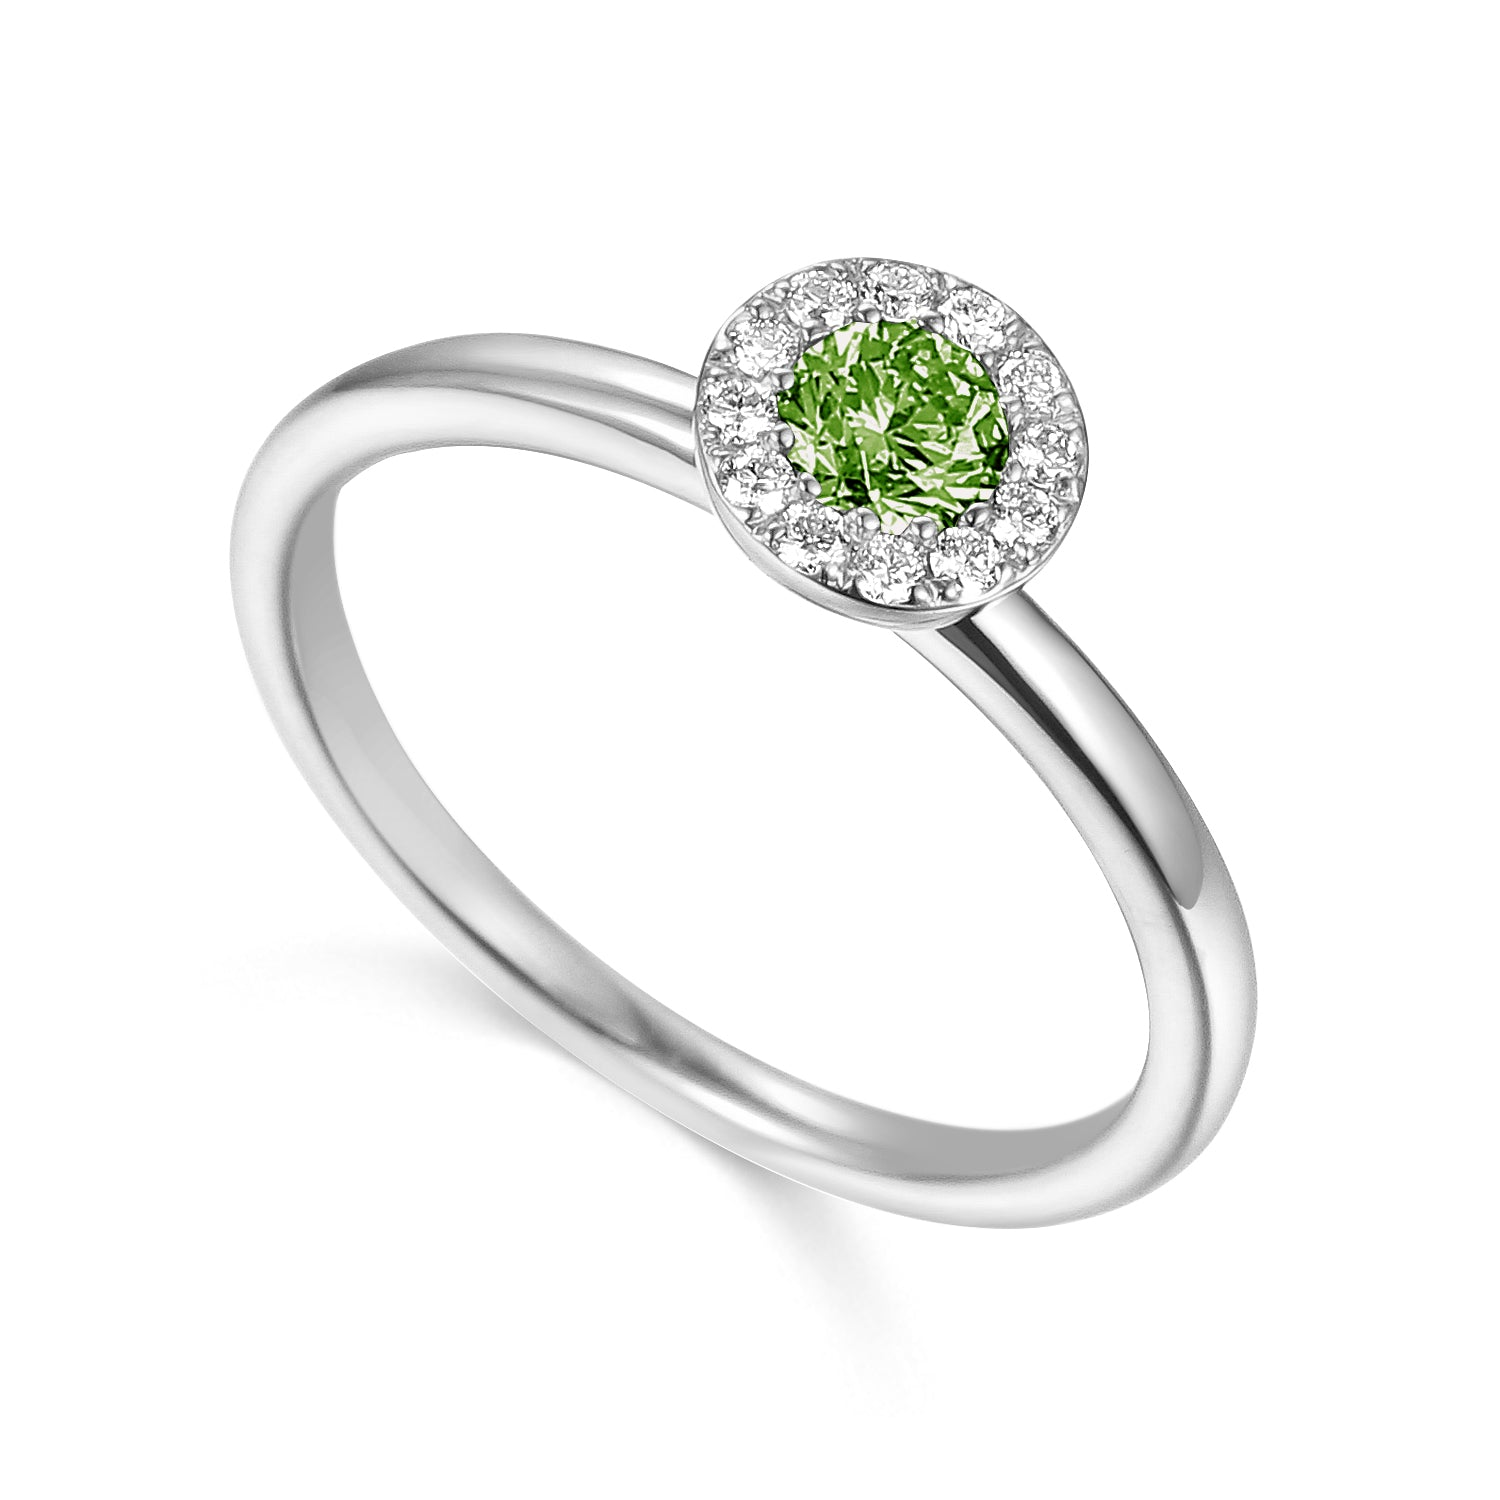 AUGUST - 9ct White Gold Peridot and Diamond Cluster Ring